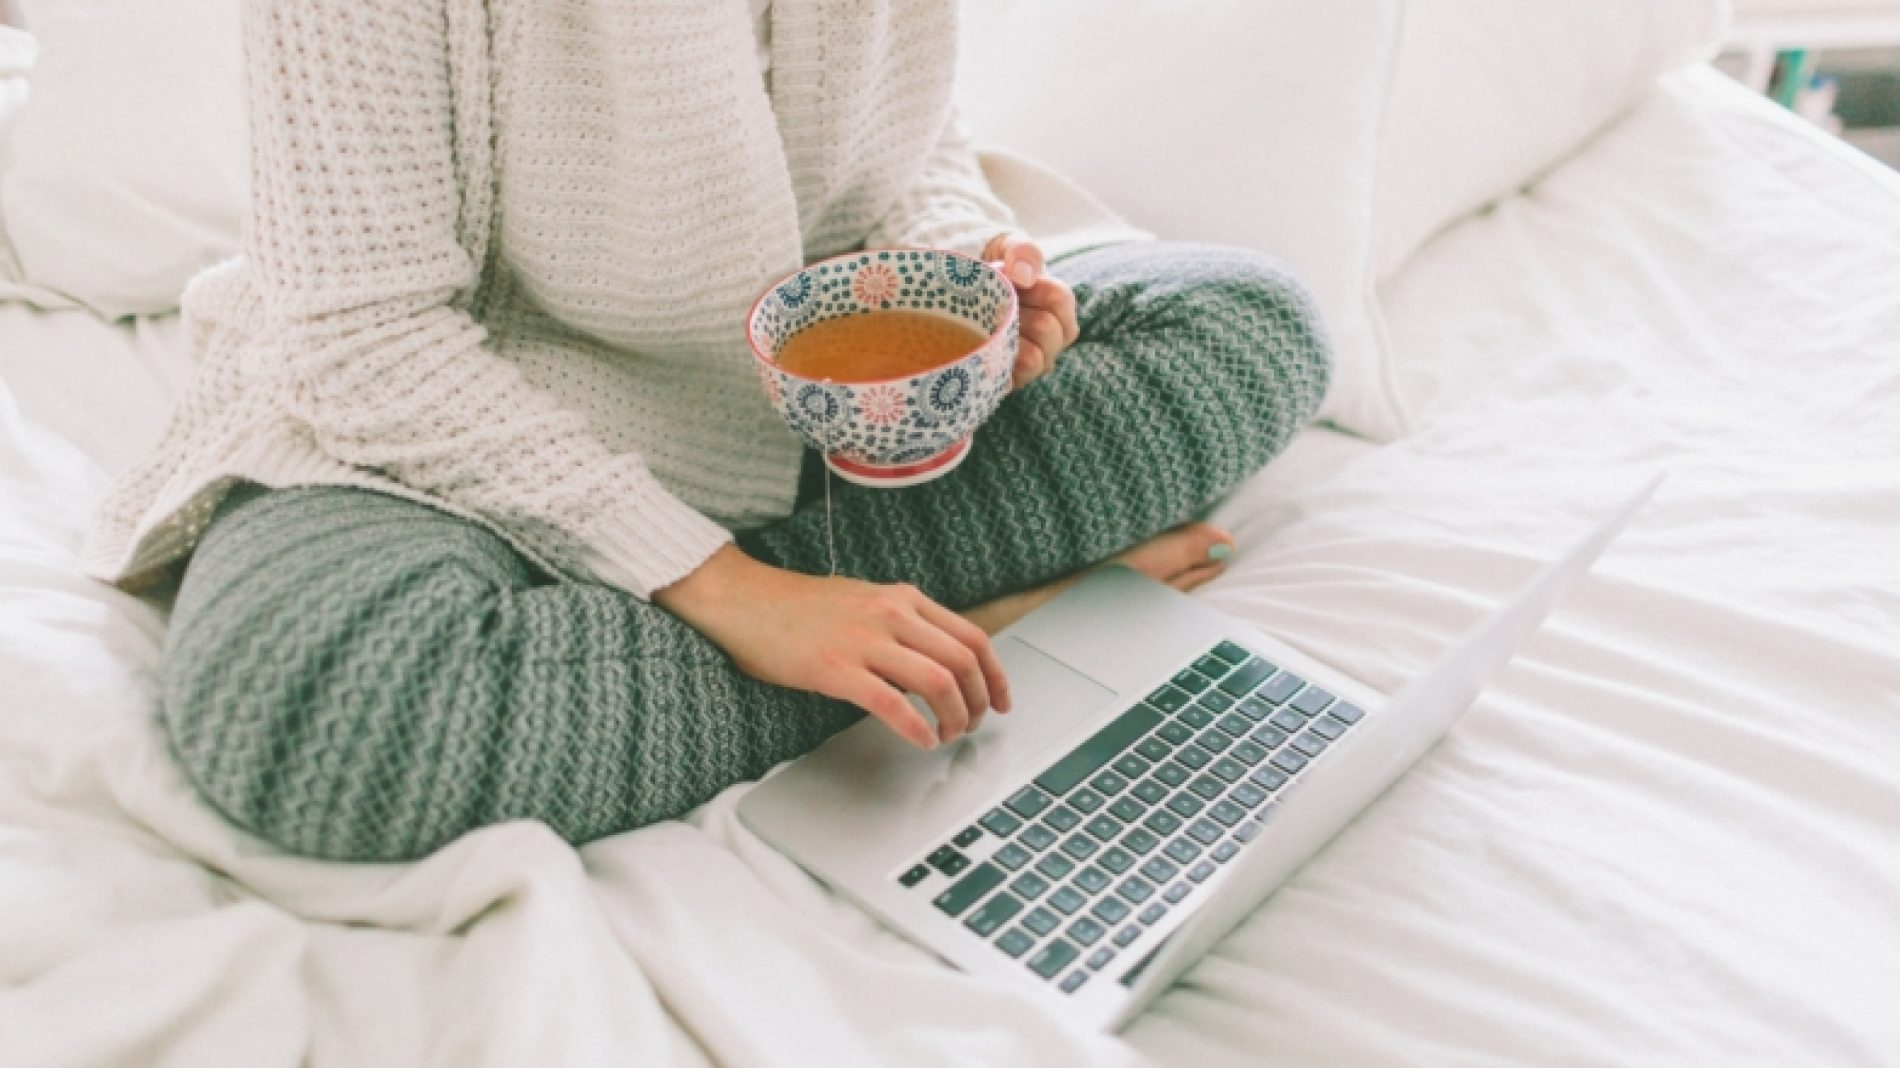 a-woman-working-on-her-laptop-from-her-bed-while-drinking-tea_t20_W7nvng-Bthhh6